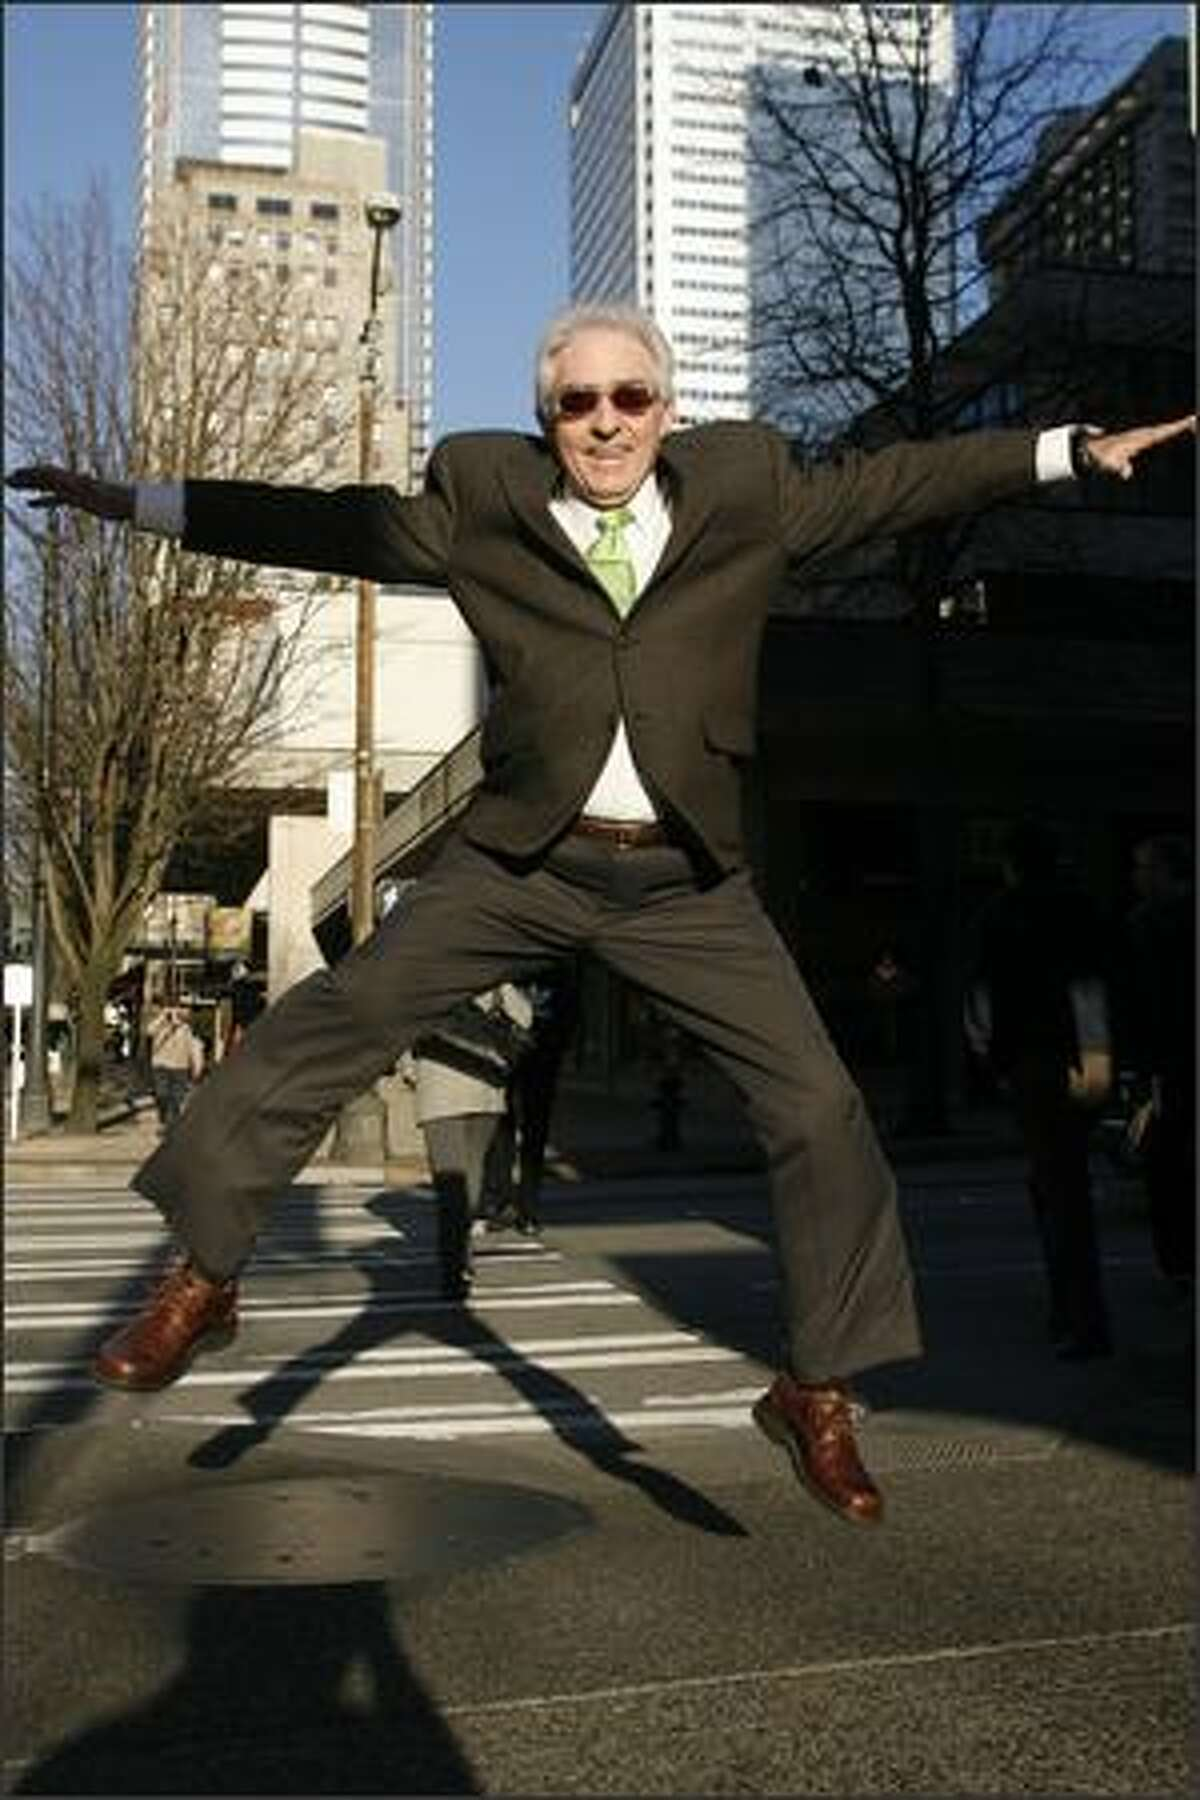 HIGH PRAISE -- Jerry Roberts, a jewelry appraiser leaps on 4th Ave. in Seattle.